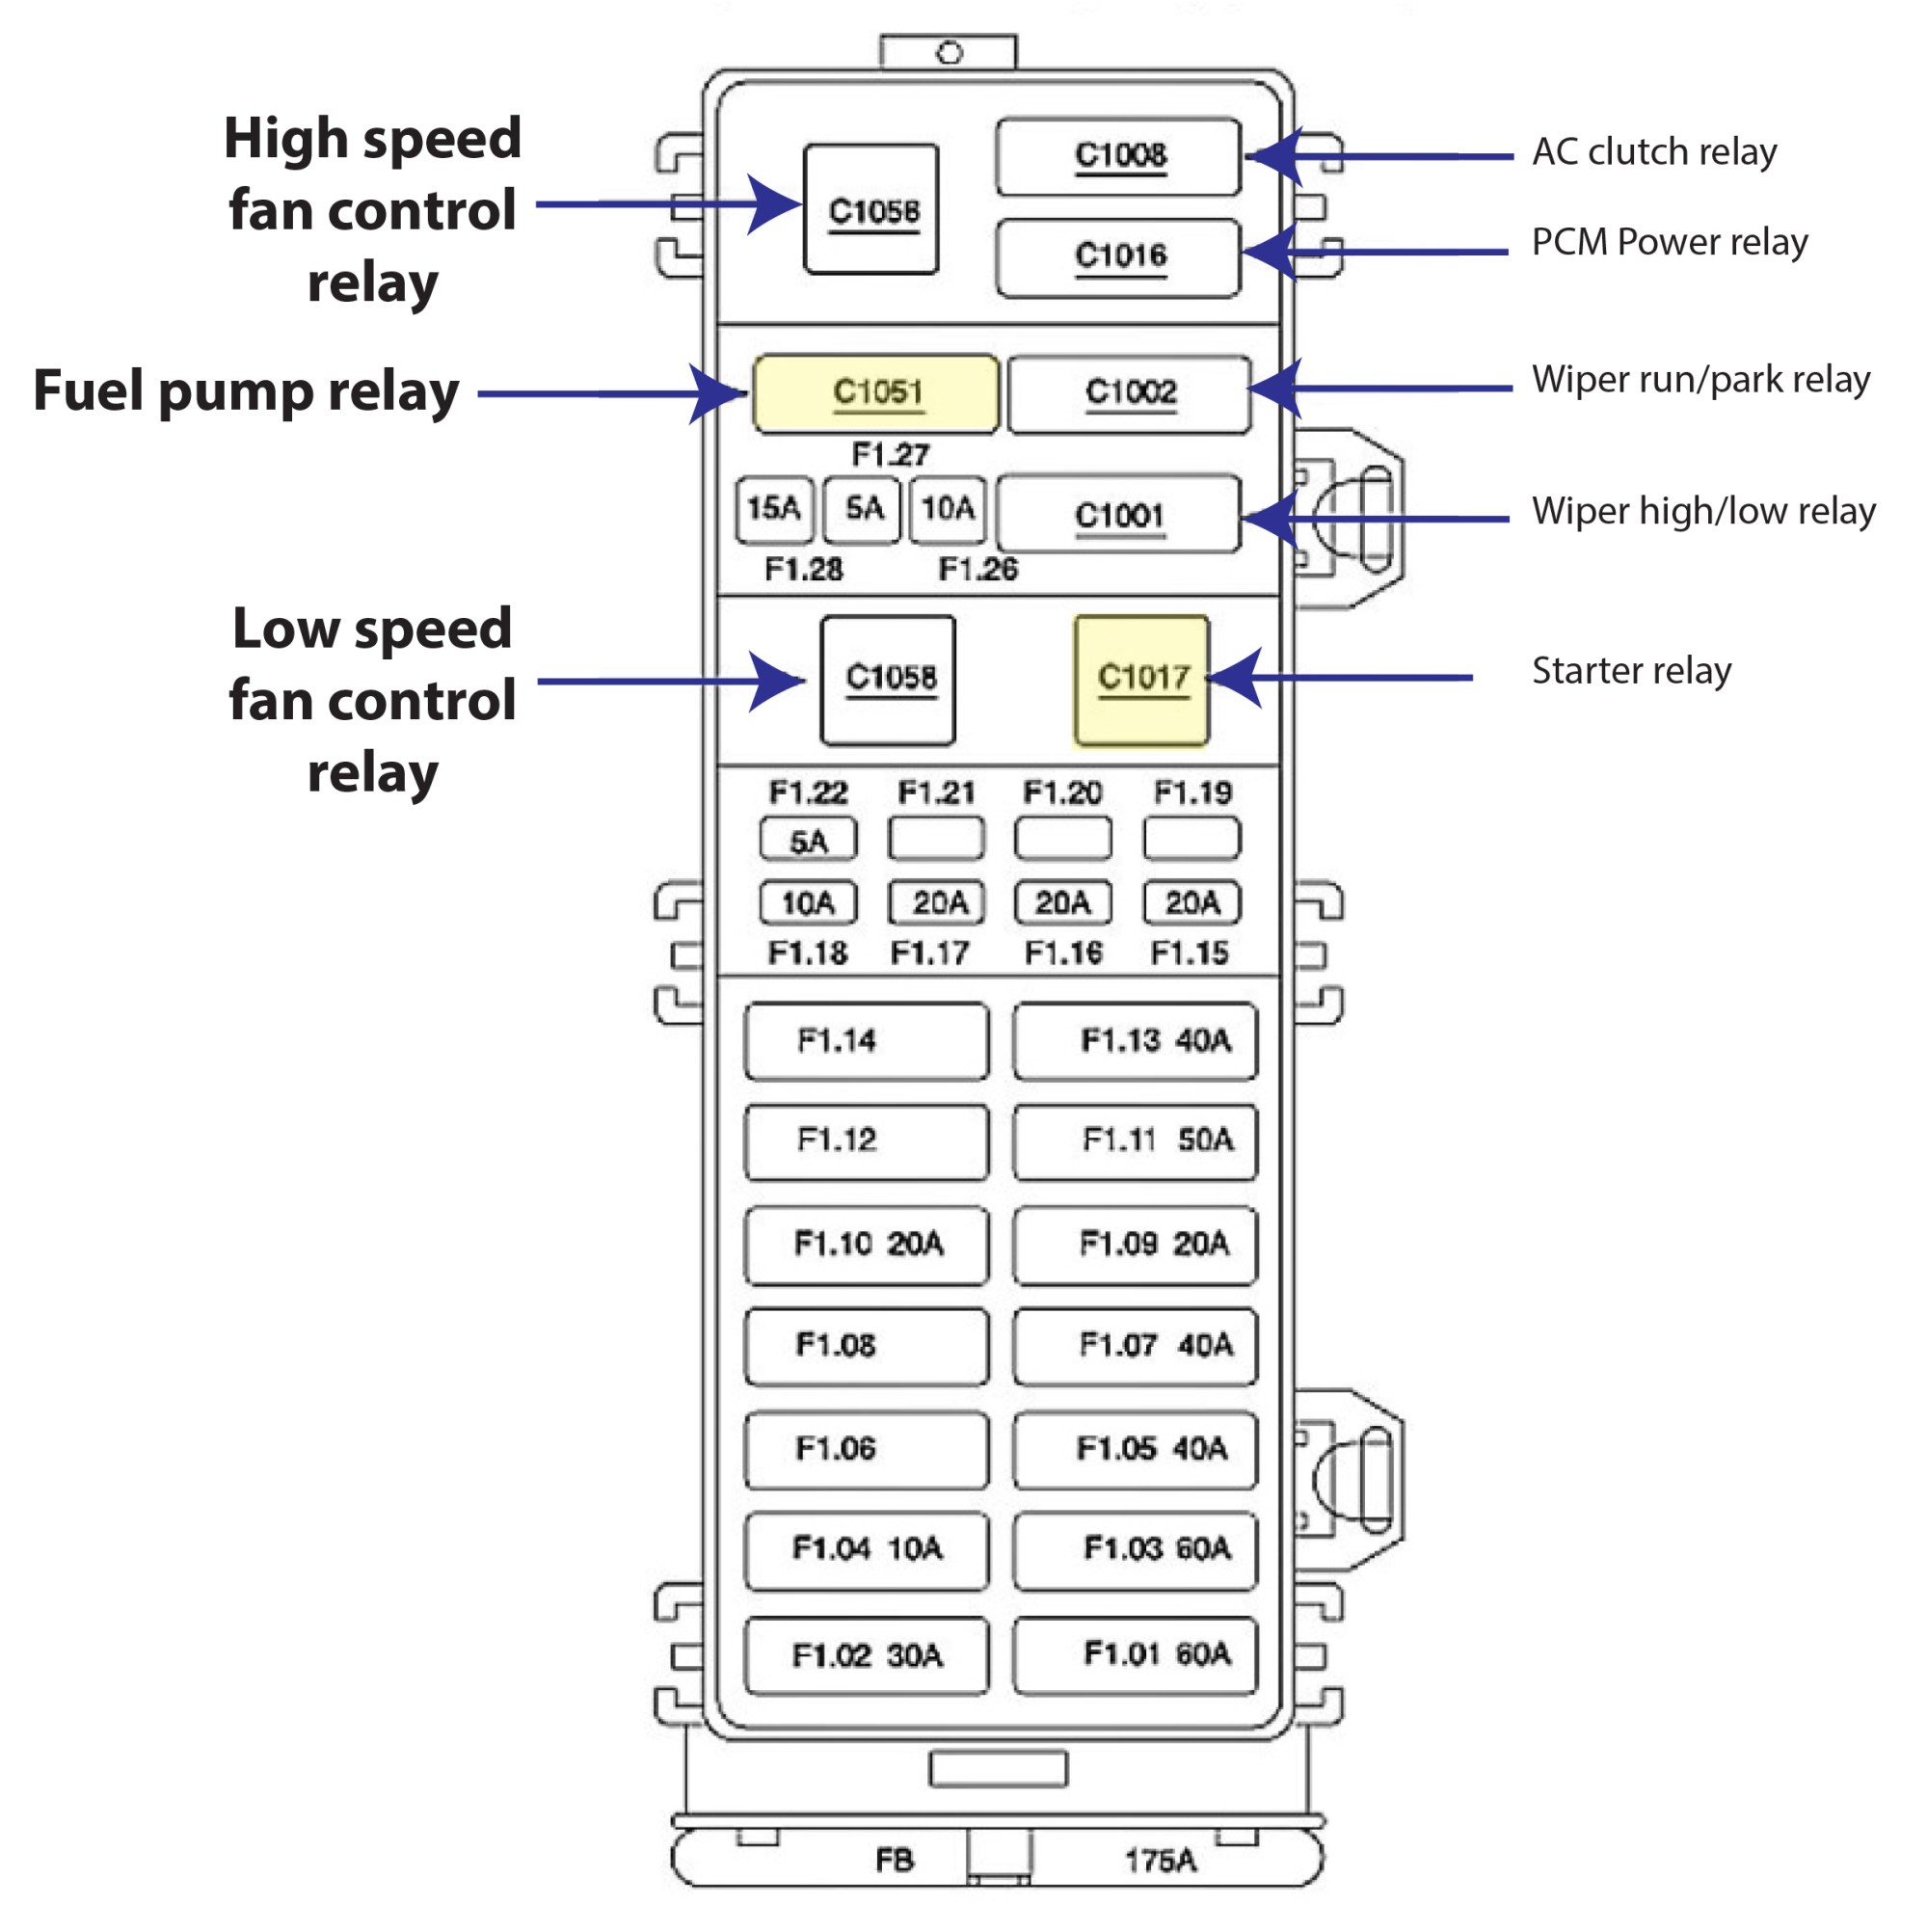 hight resolution of fuse diagram wiring diagram2006 ford taurus fuse panel diagram wiring diagram list2006 ford taurus fuse diagrams